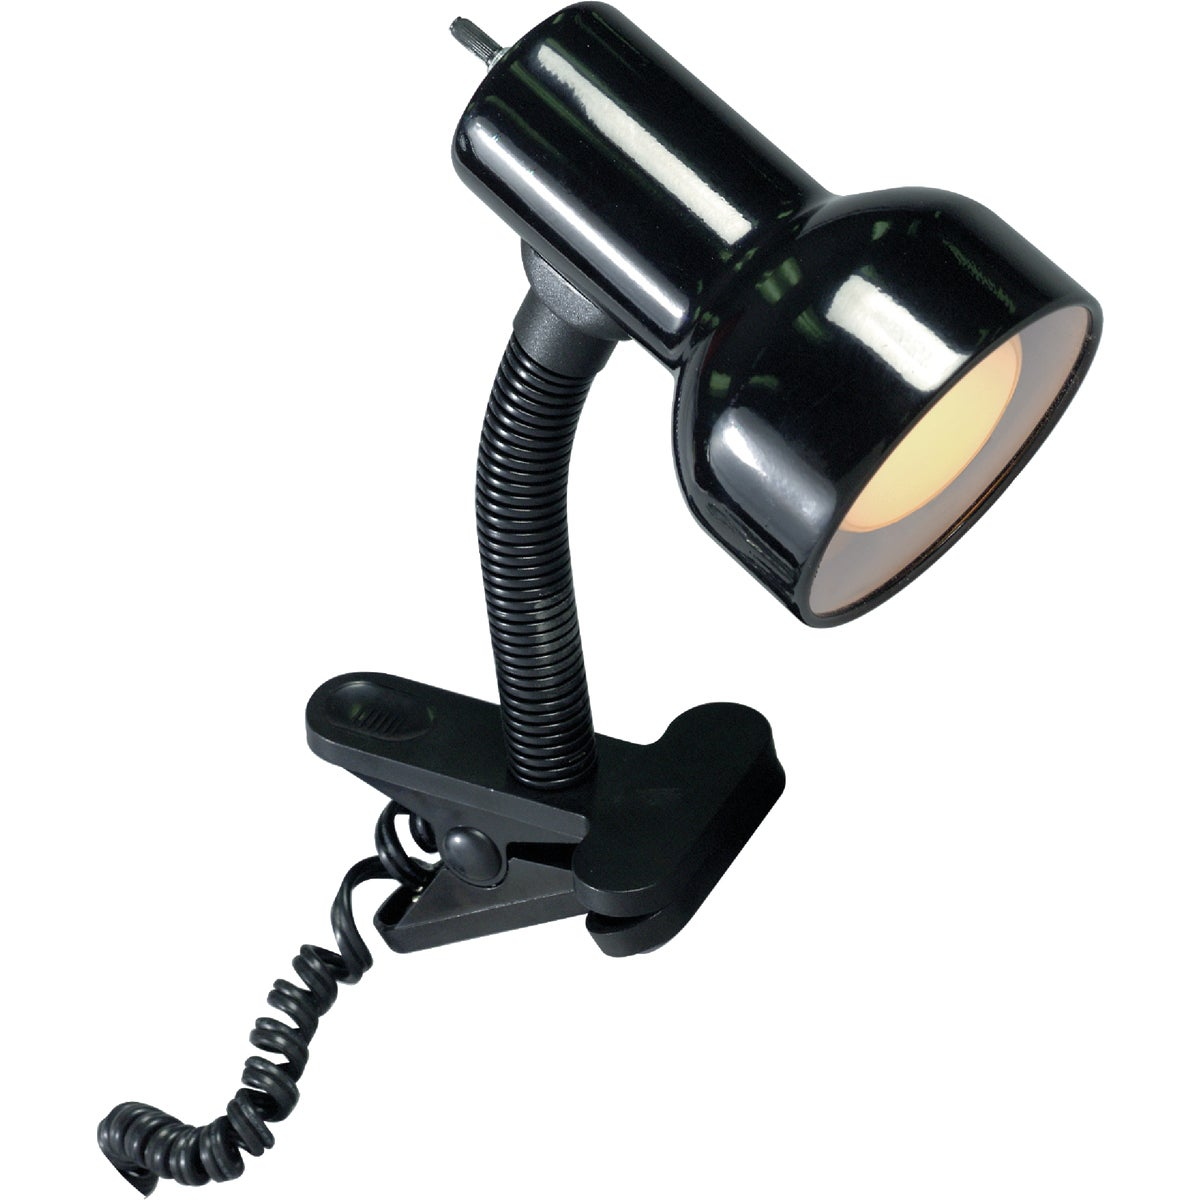 60W BLK GSNK CLP-ON LAMP - LS-111BLK by Lite Source